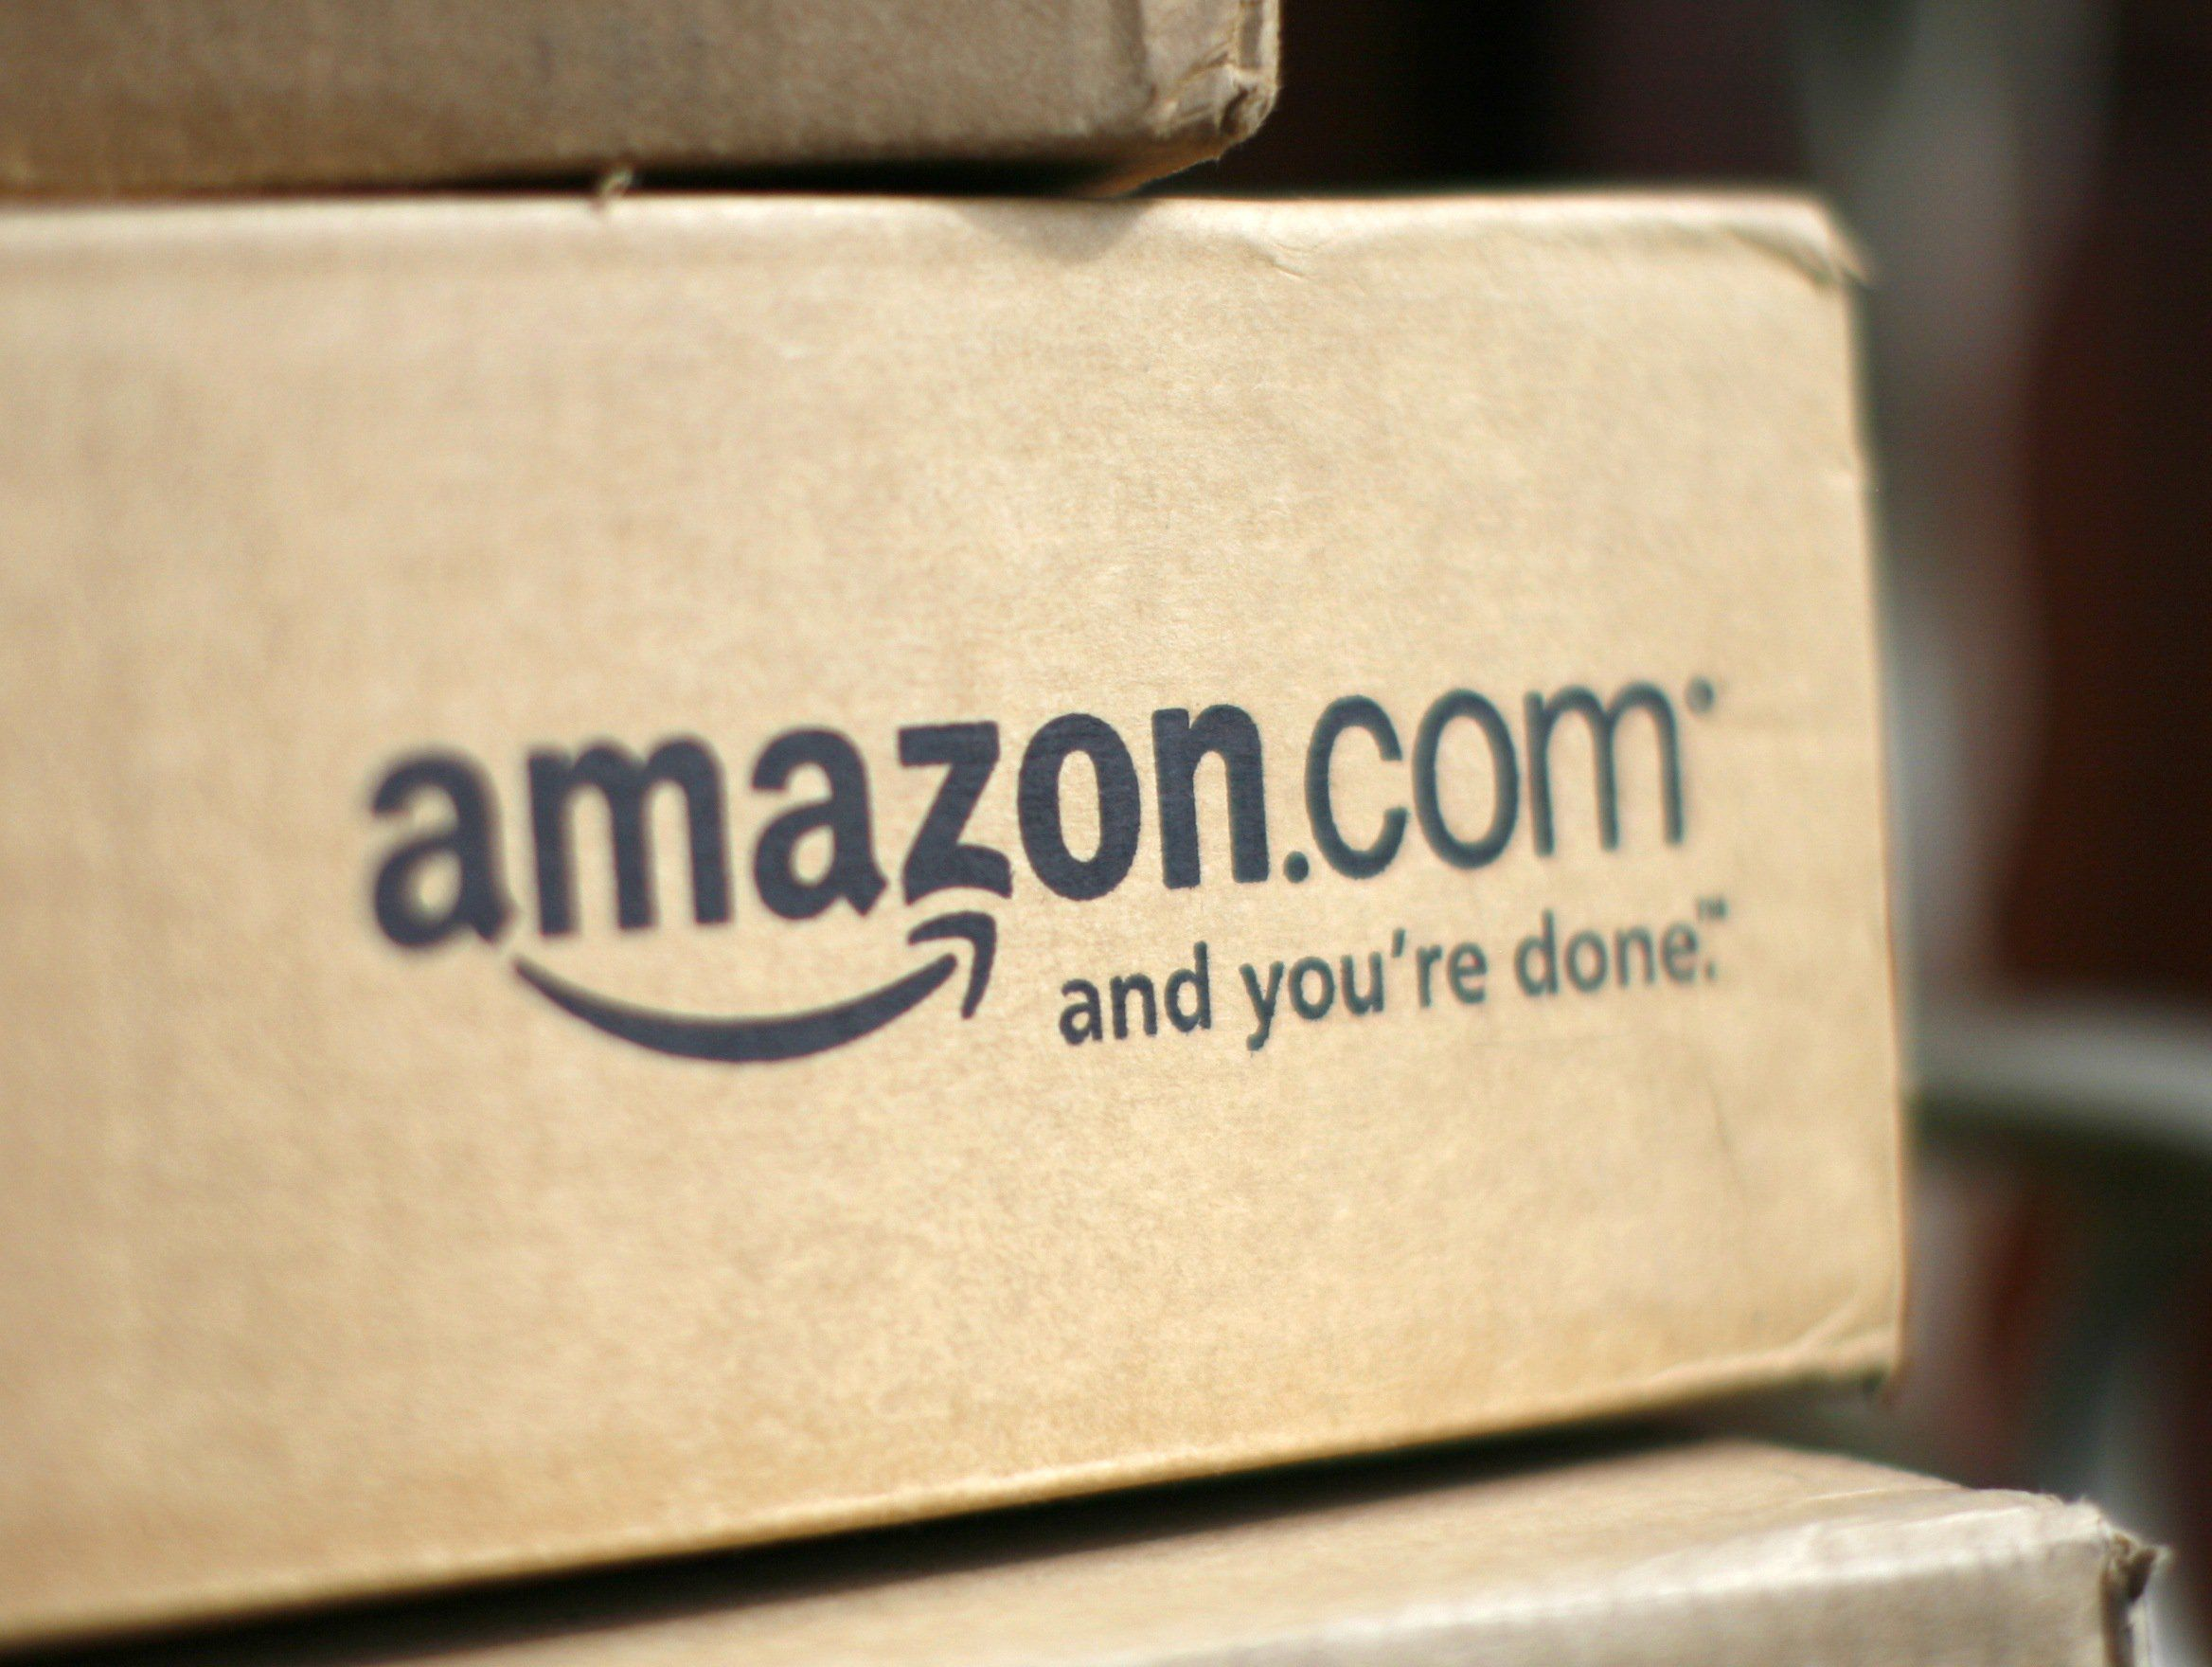 Amazon lures investors back from Alibaba - http://goo.gl/7oWQKU